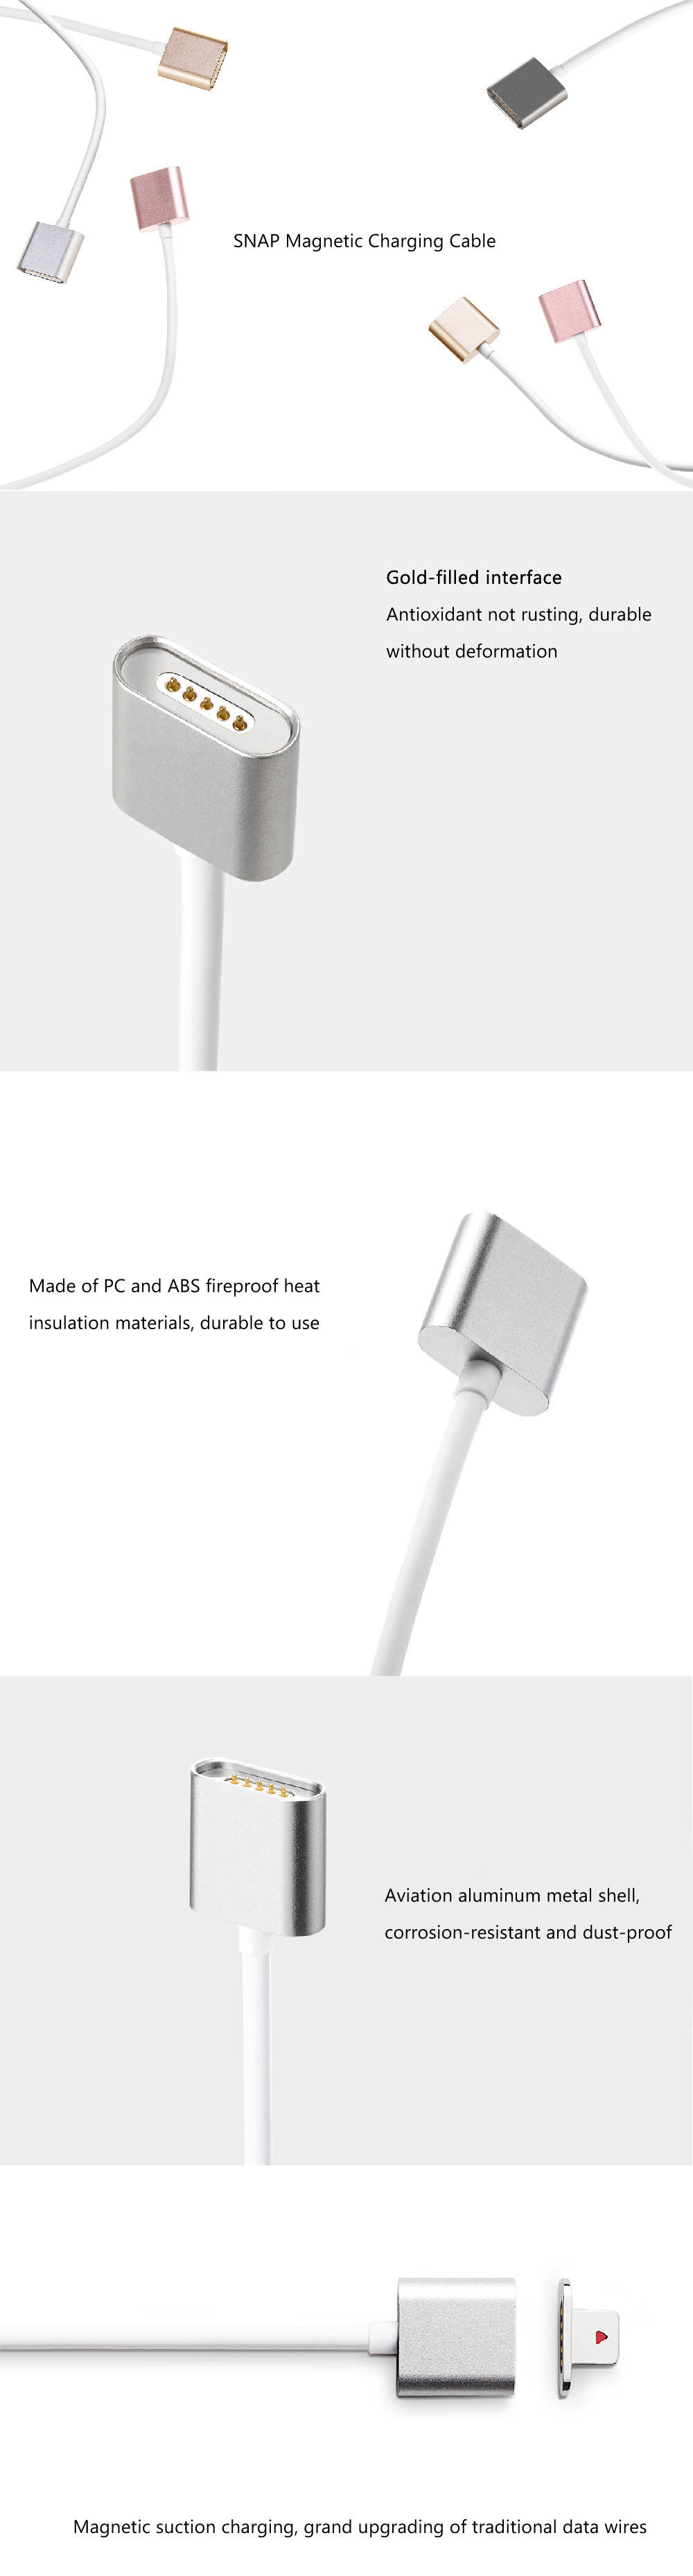 Moizen SNAP - 02 USB Data Cable Magnetic Charger Adapter 1.2M for iPhone / iPad